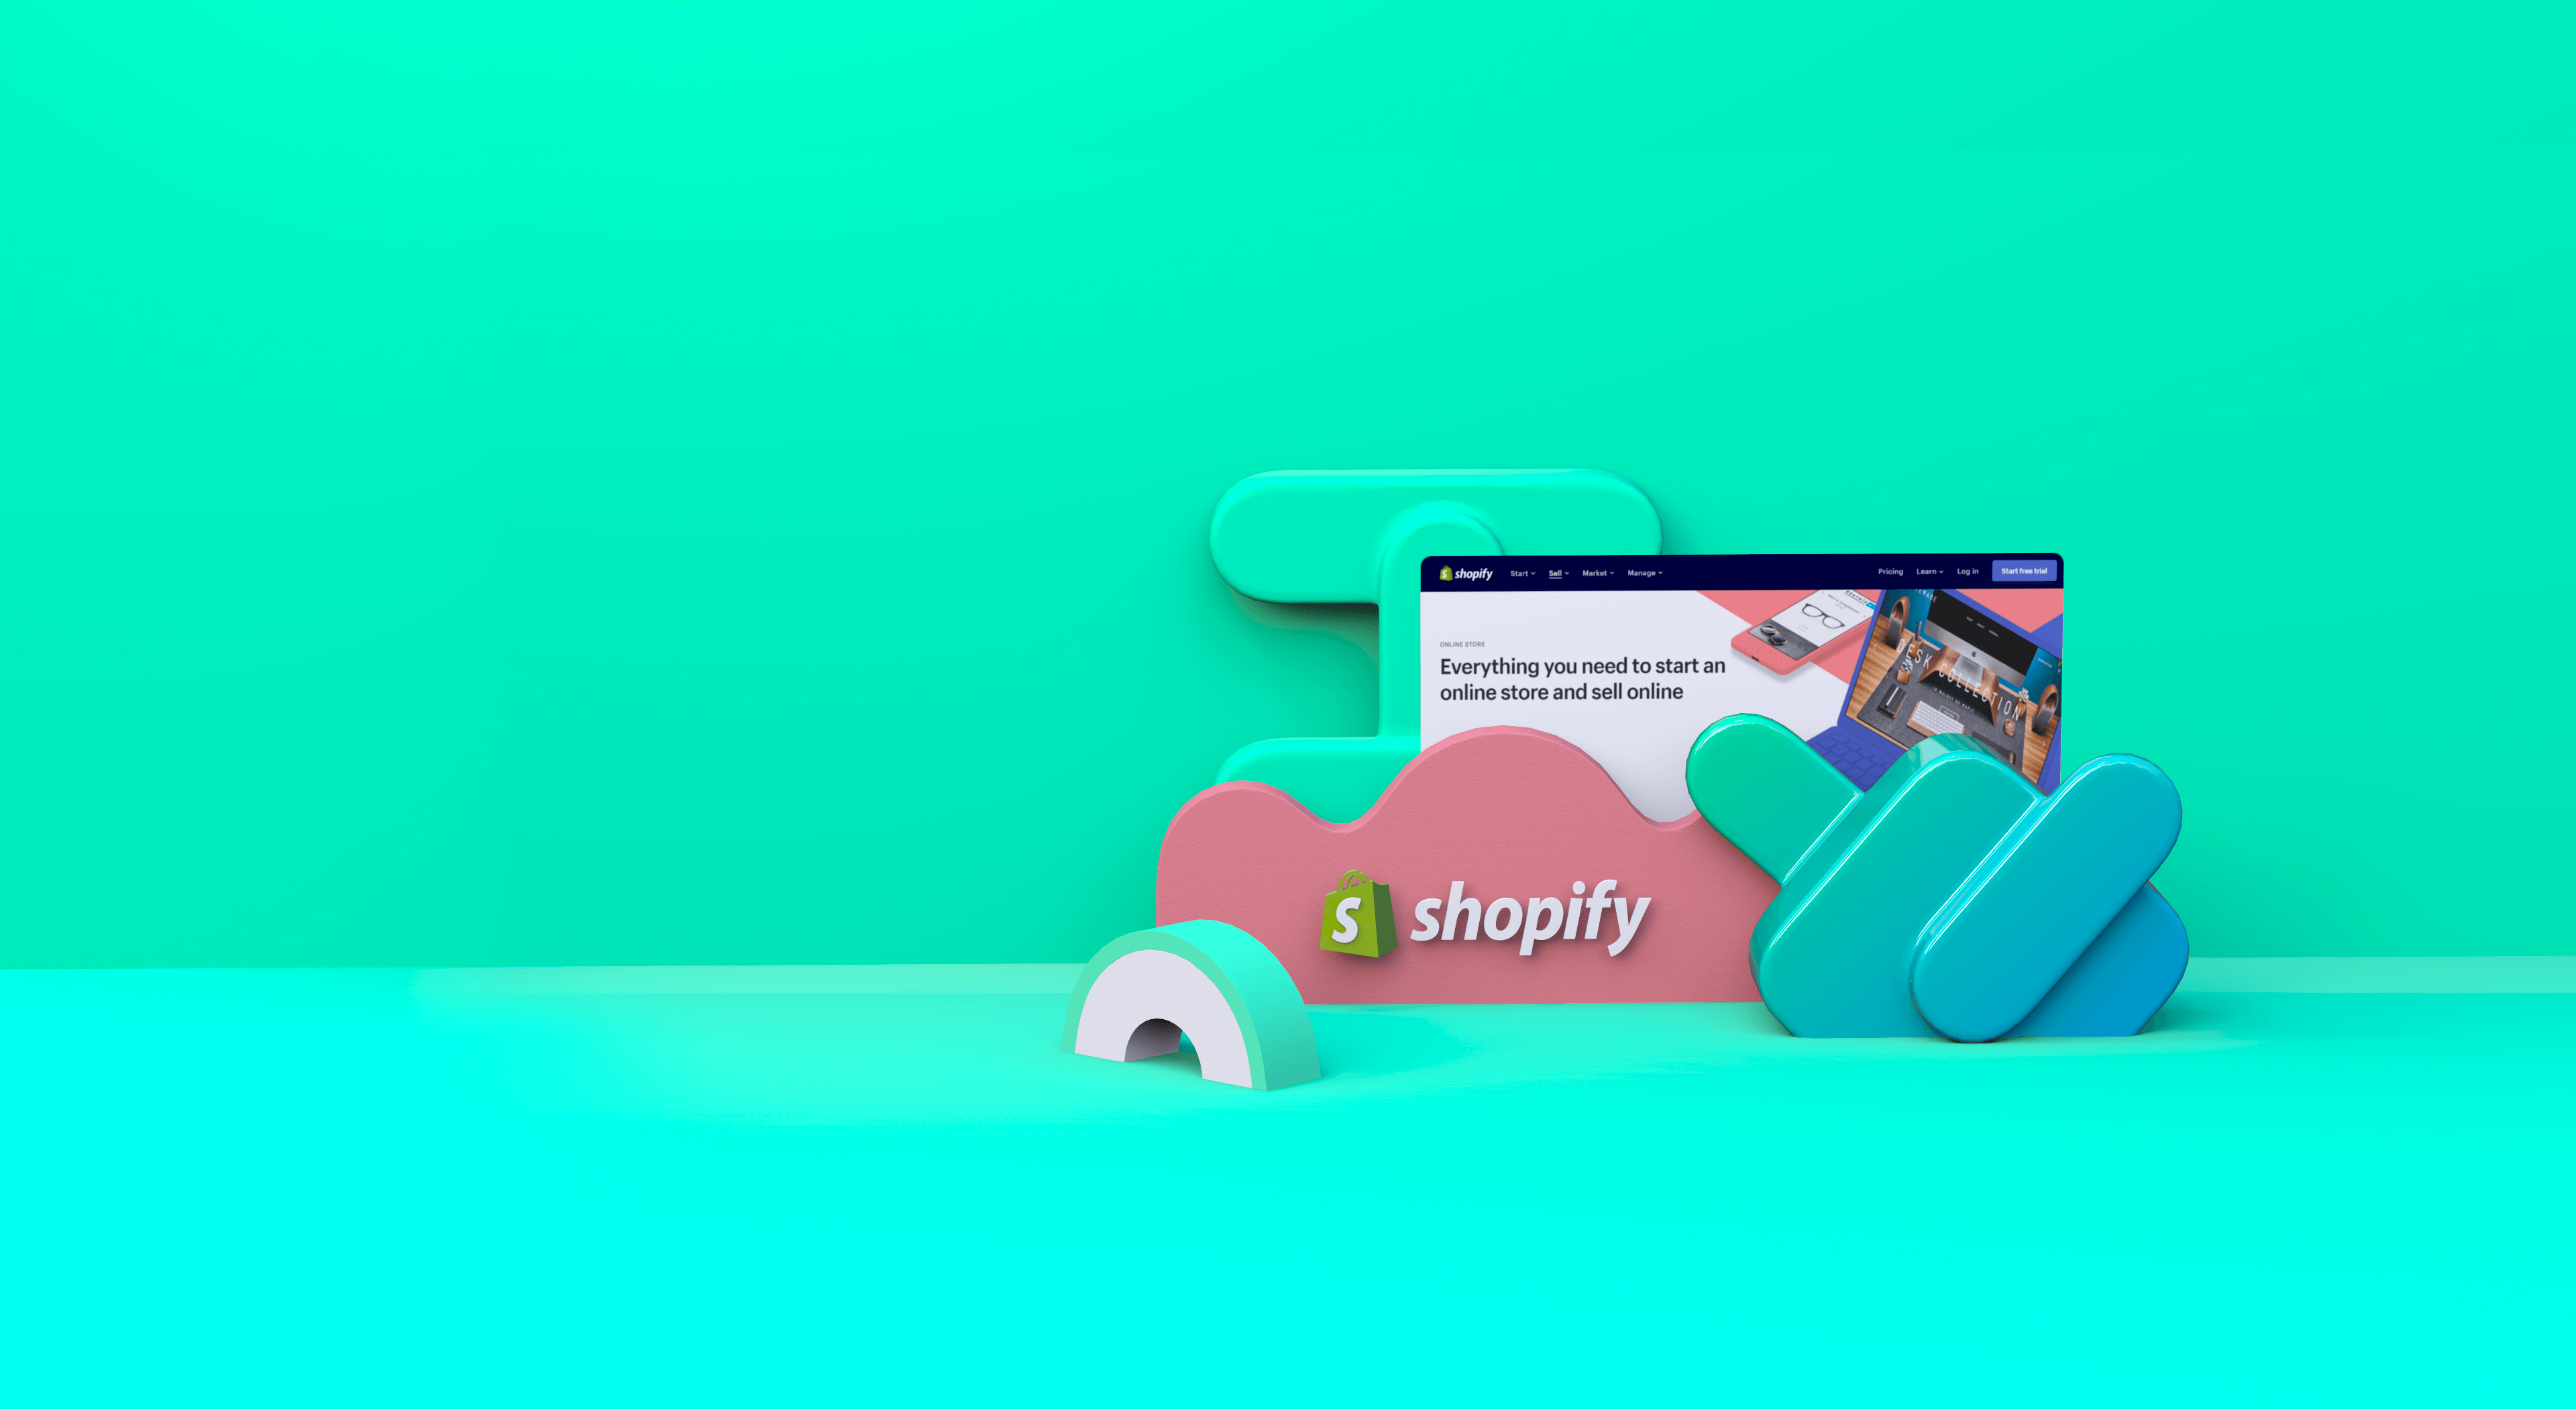 shopify_vectary_3d_viewer_header